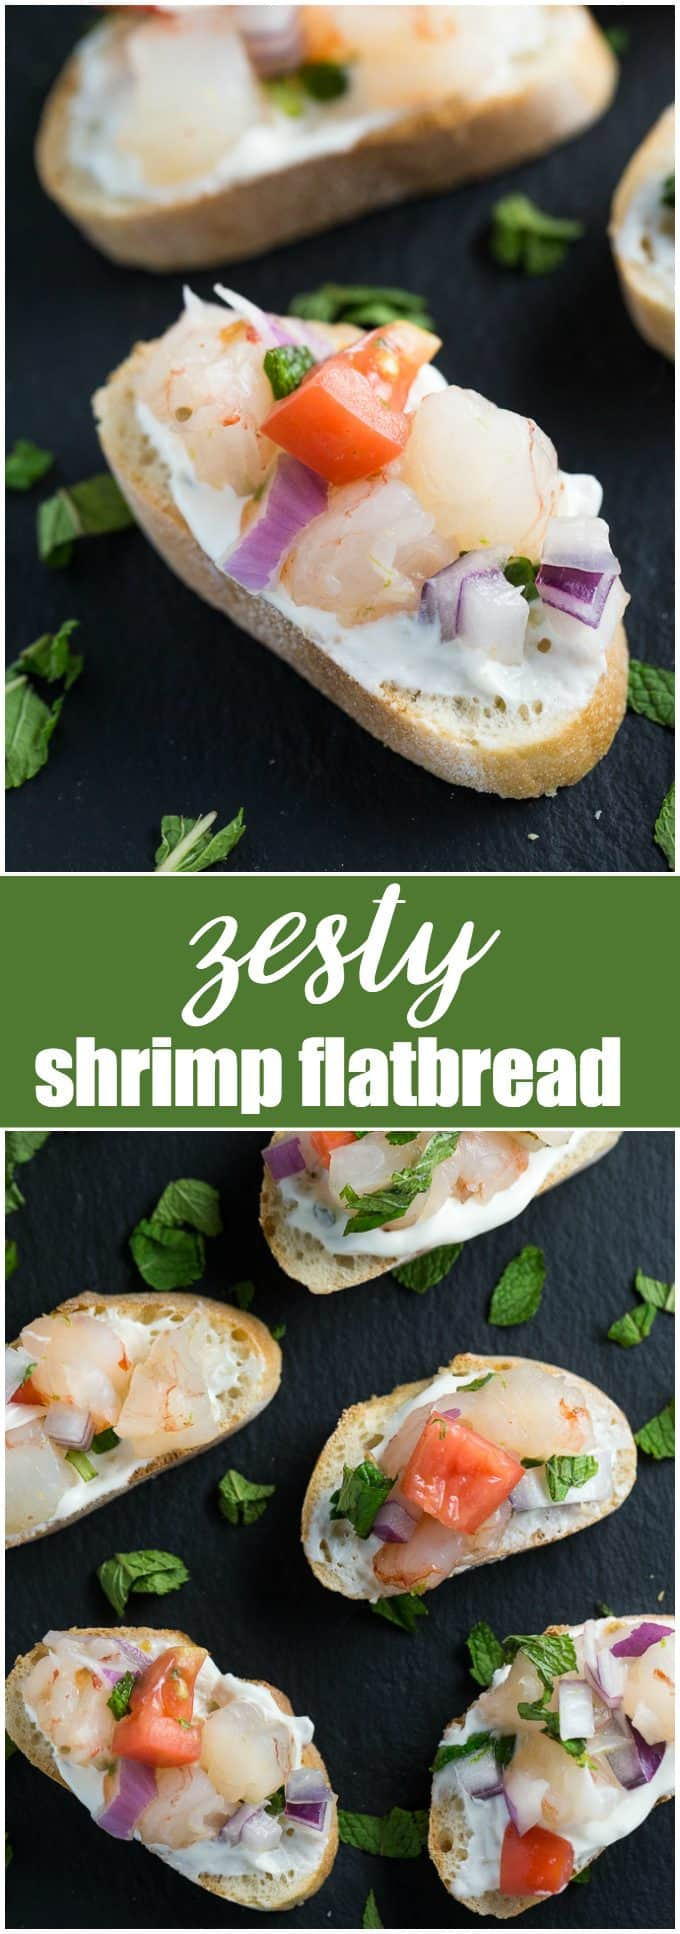 Zesty Shrimp Flatbread - A fresh and spicy appetizer that will delight your tastebuds!